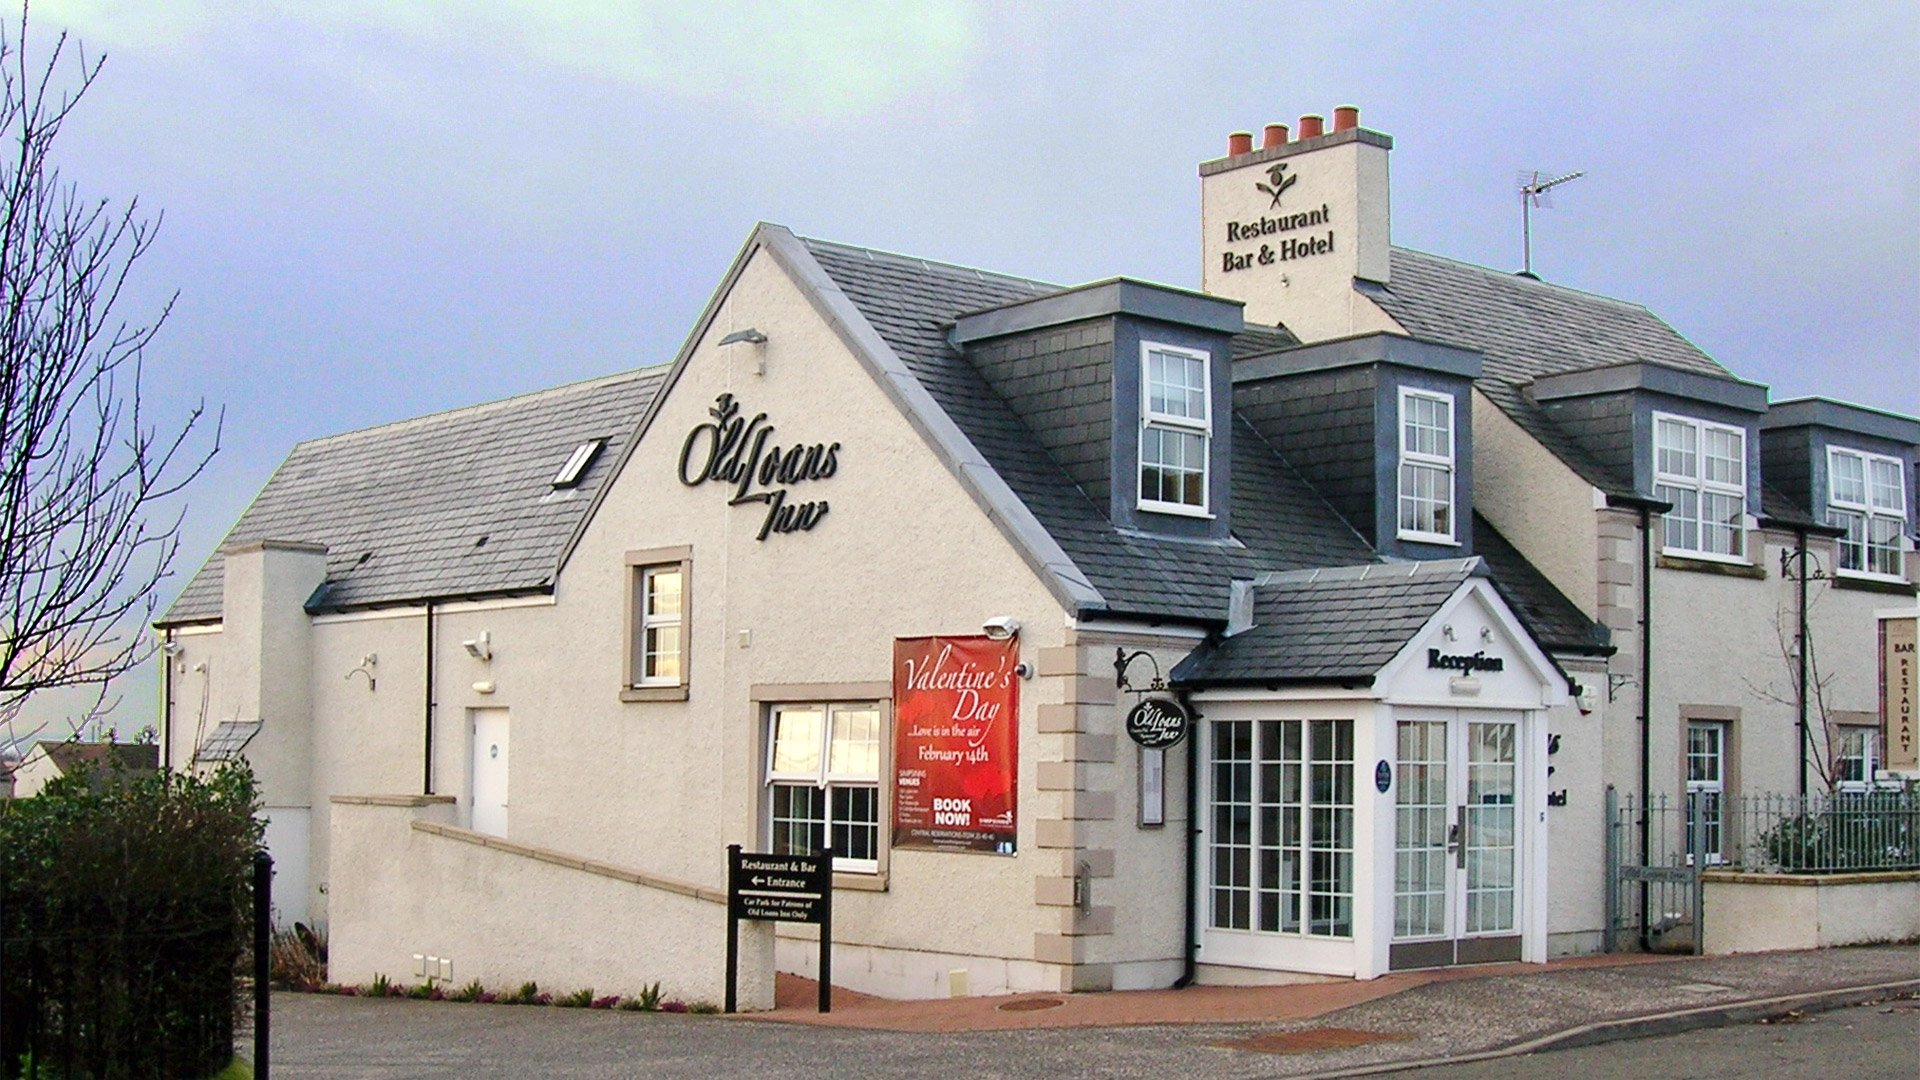 4 Star Hotel in Troon, Scotland